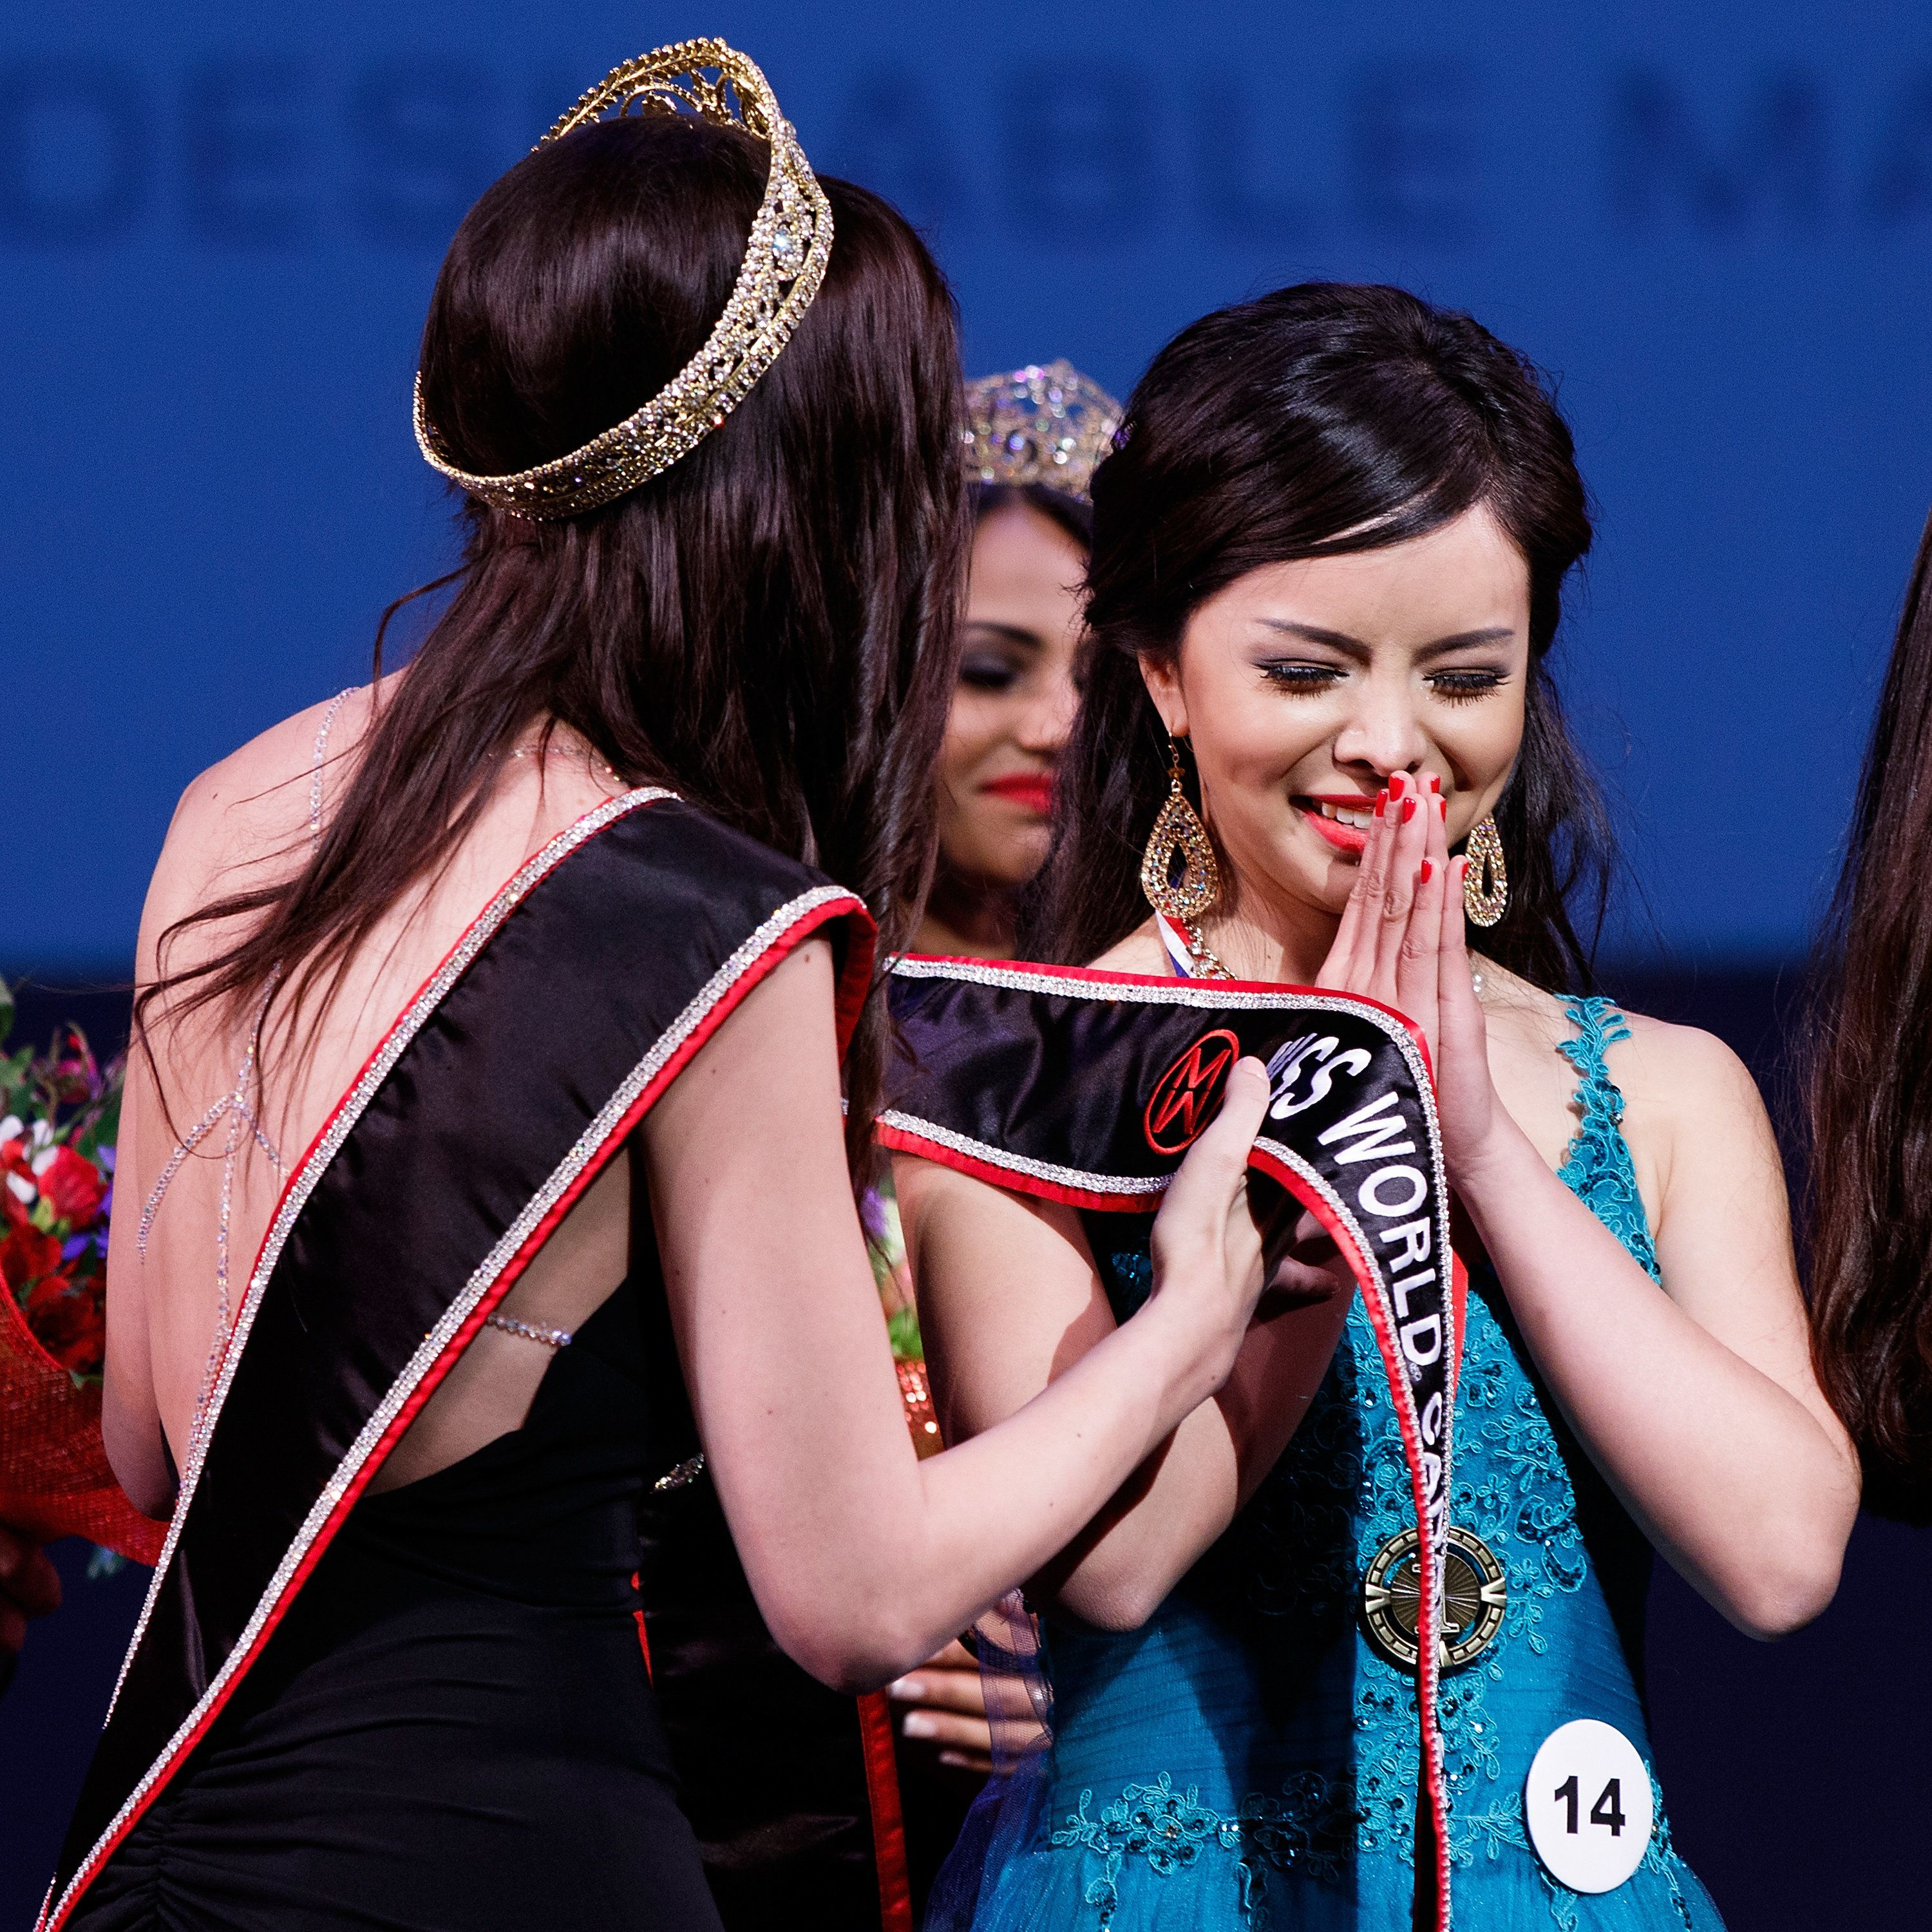 VANCOUVER, BC - MAY 16:  Anastasia Lin (R) is crowned Miss World Canada 2015 by Former Miss World Canada 2014 Annora Bourgeault (L) during Miss World Canada 2015 pageant competition at The Queen Elizabeth Theatre on May 16, 2015 in Vancouver, Canada.  (Photo by Andrew Chin/Getty Images)